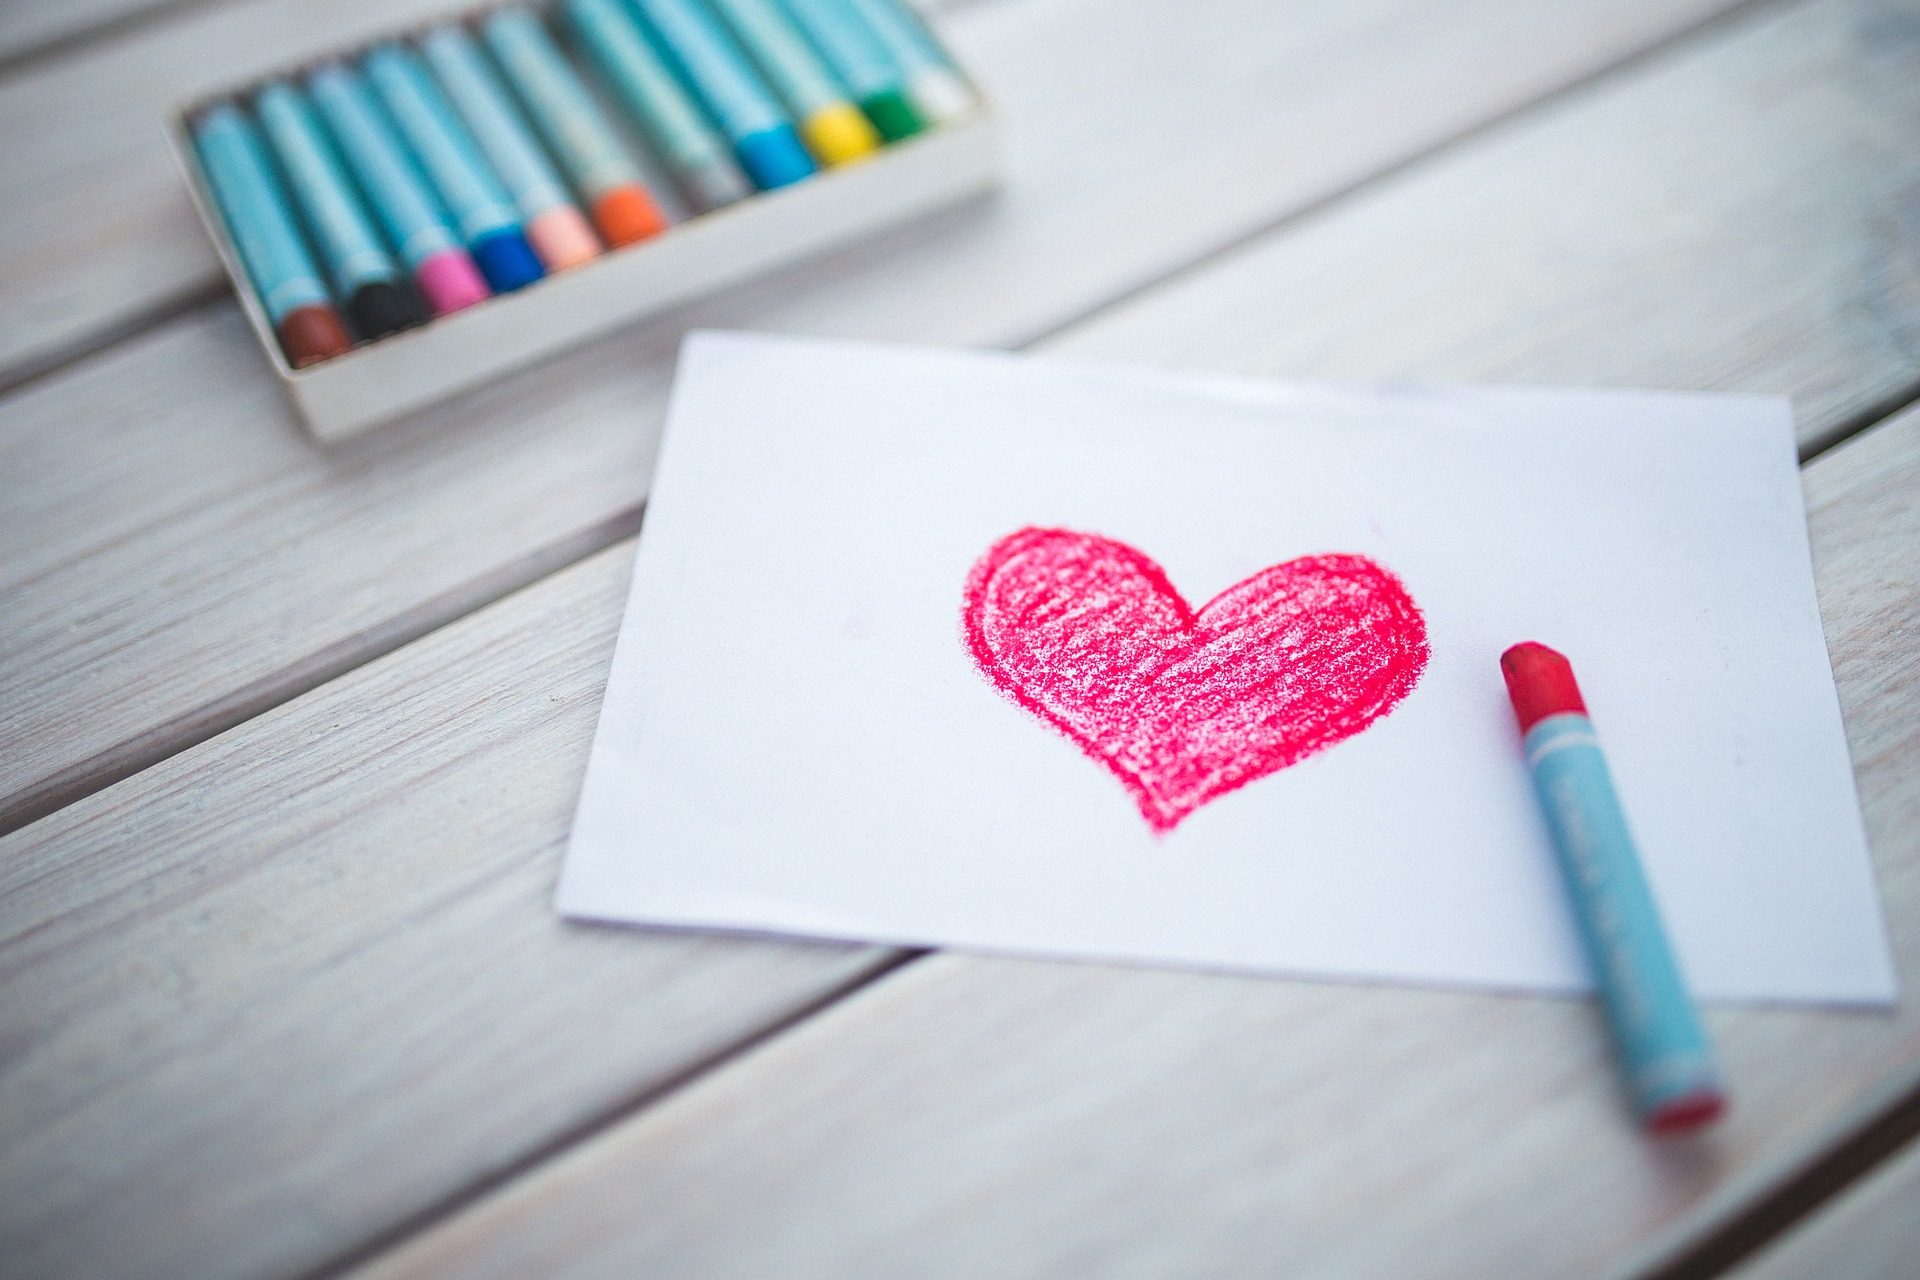 A drawing of a heart